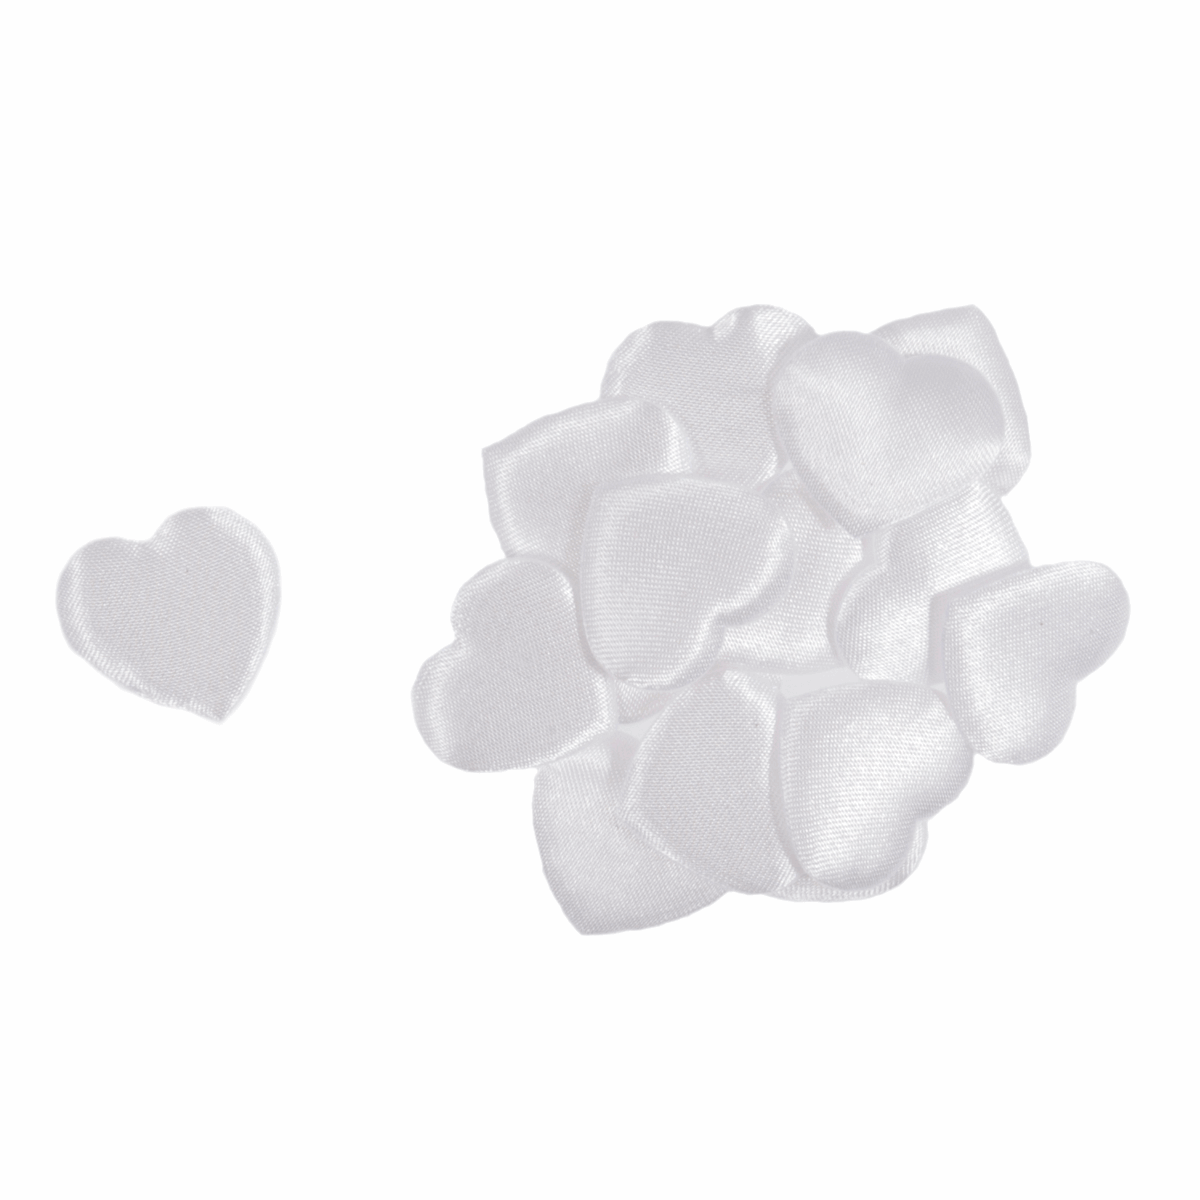 Picture of Hearts: Padded: 2cm: White: Pack of 15